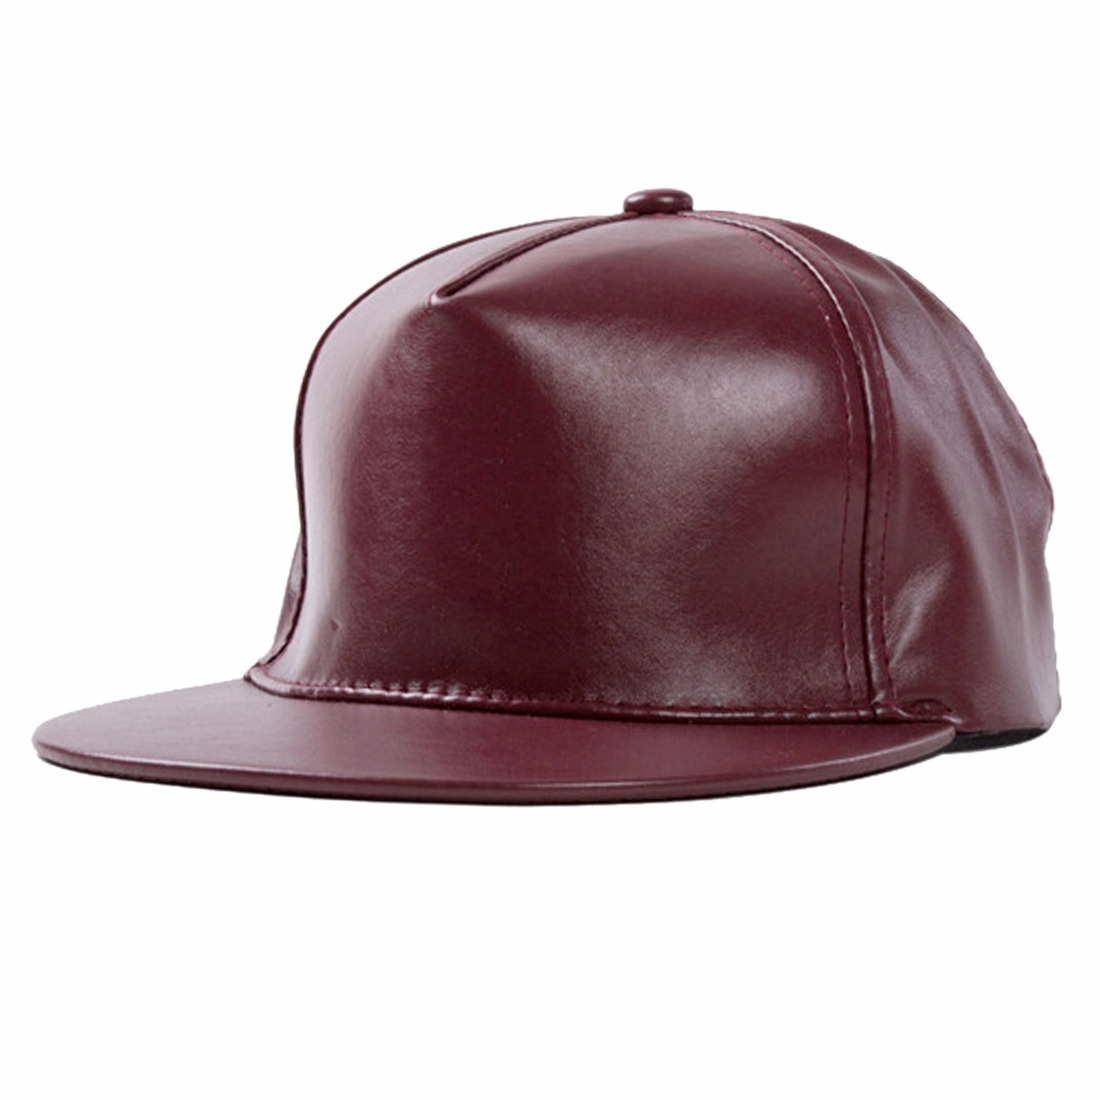 Hot Solid Color Pu Leather Costume Brim Hats Hip Hop Visor Baseball Caps Sunhat